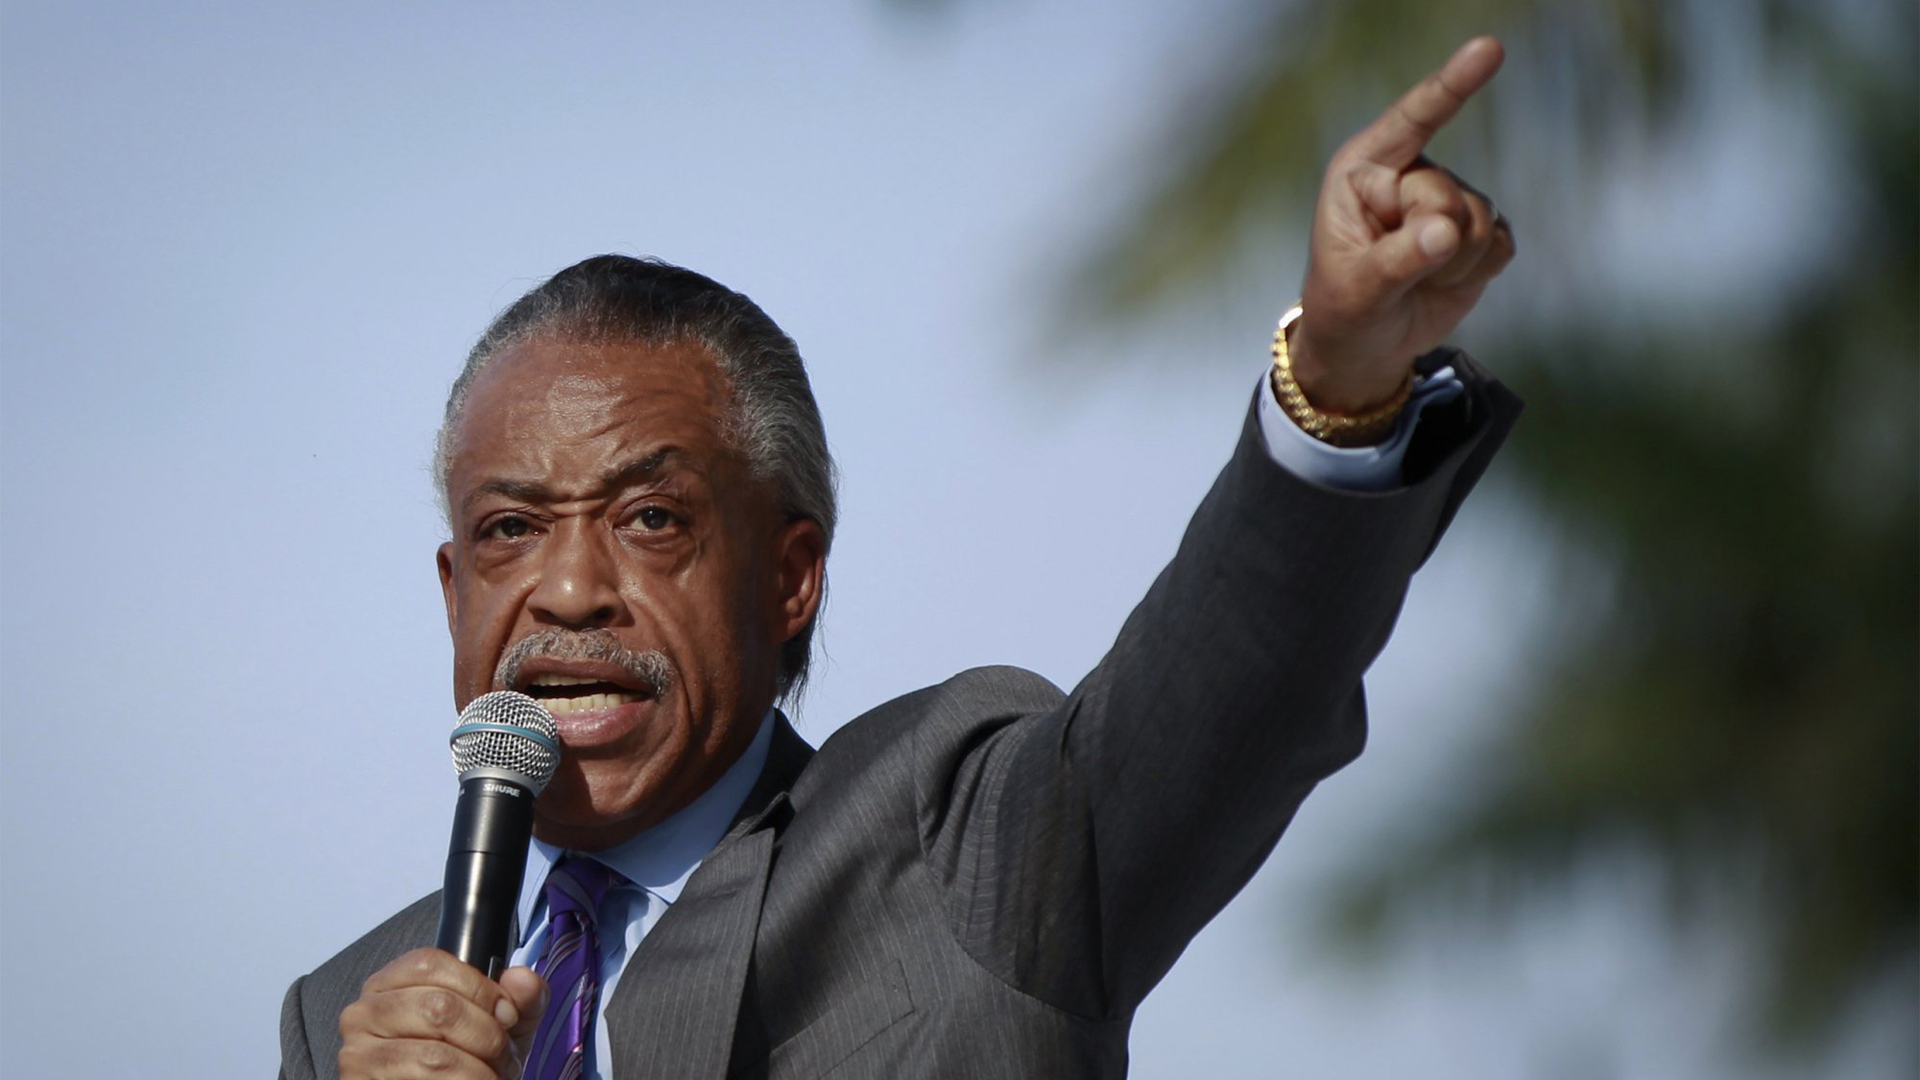 Al Sharpton Wallpapers Hd